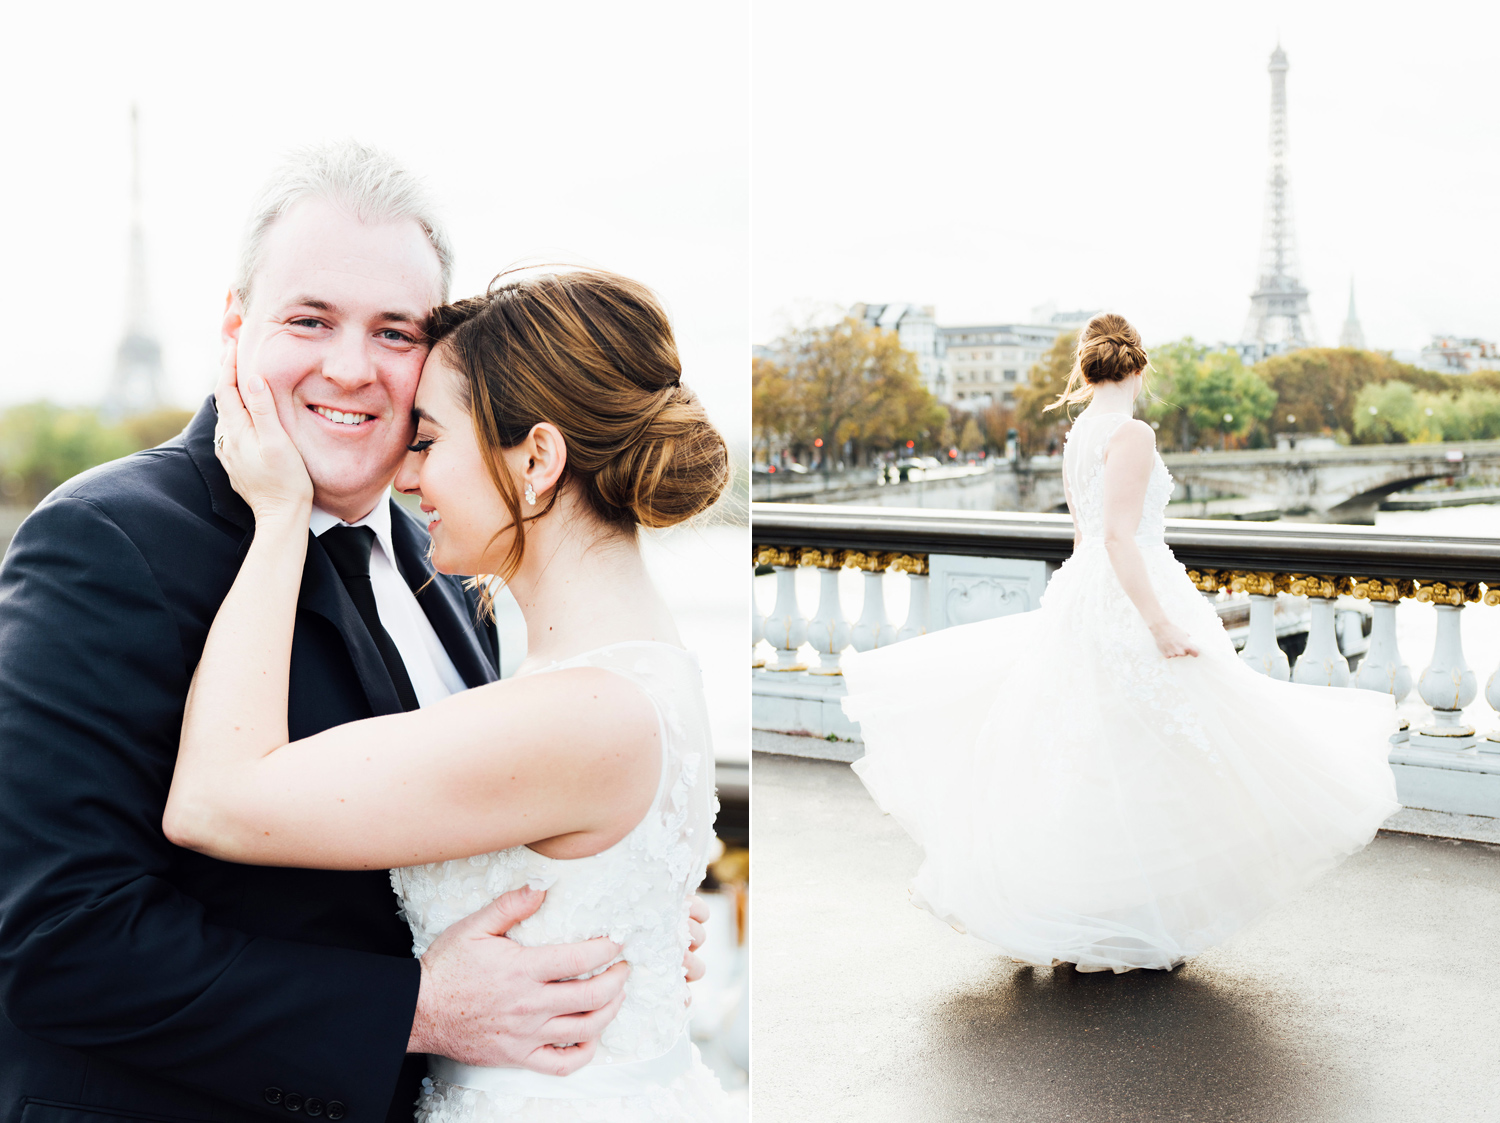 003-katie-mitchell-photography-paris-elopement-wedding-portrait-photographer.jpg